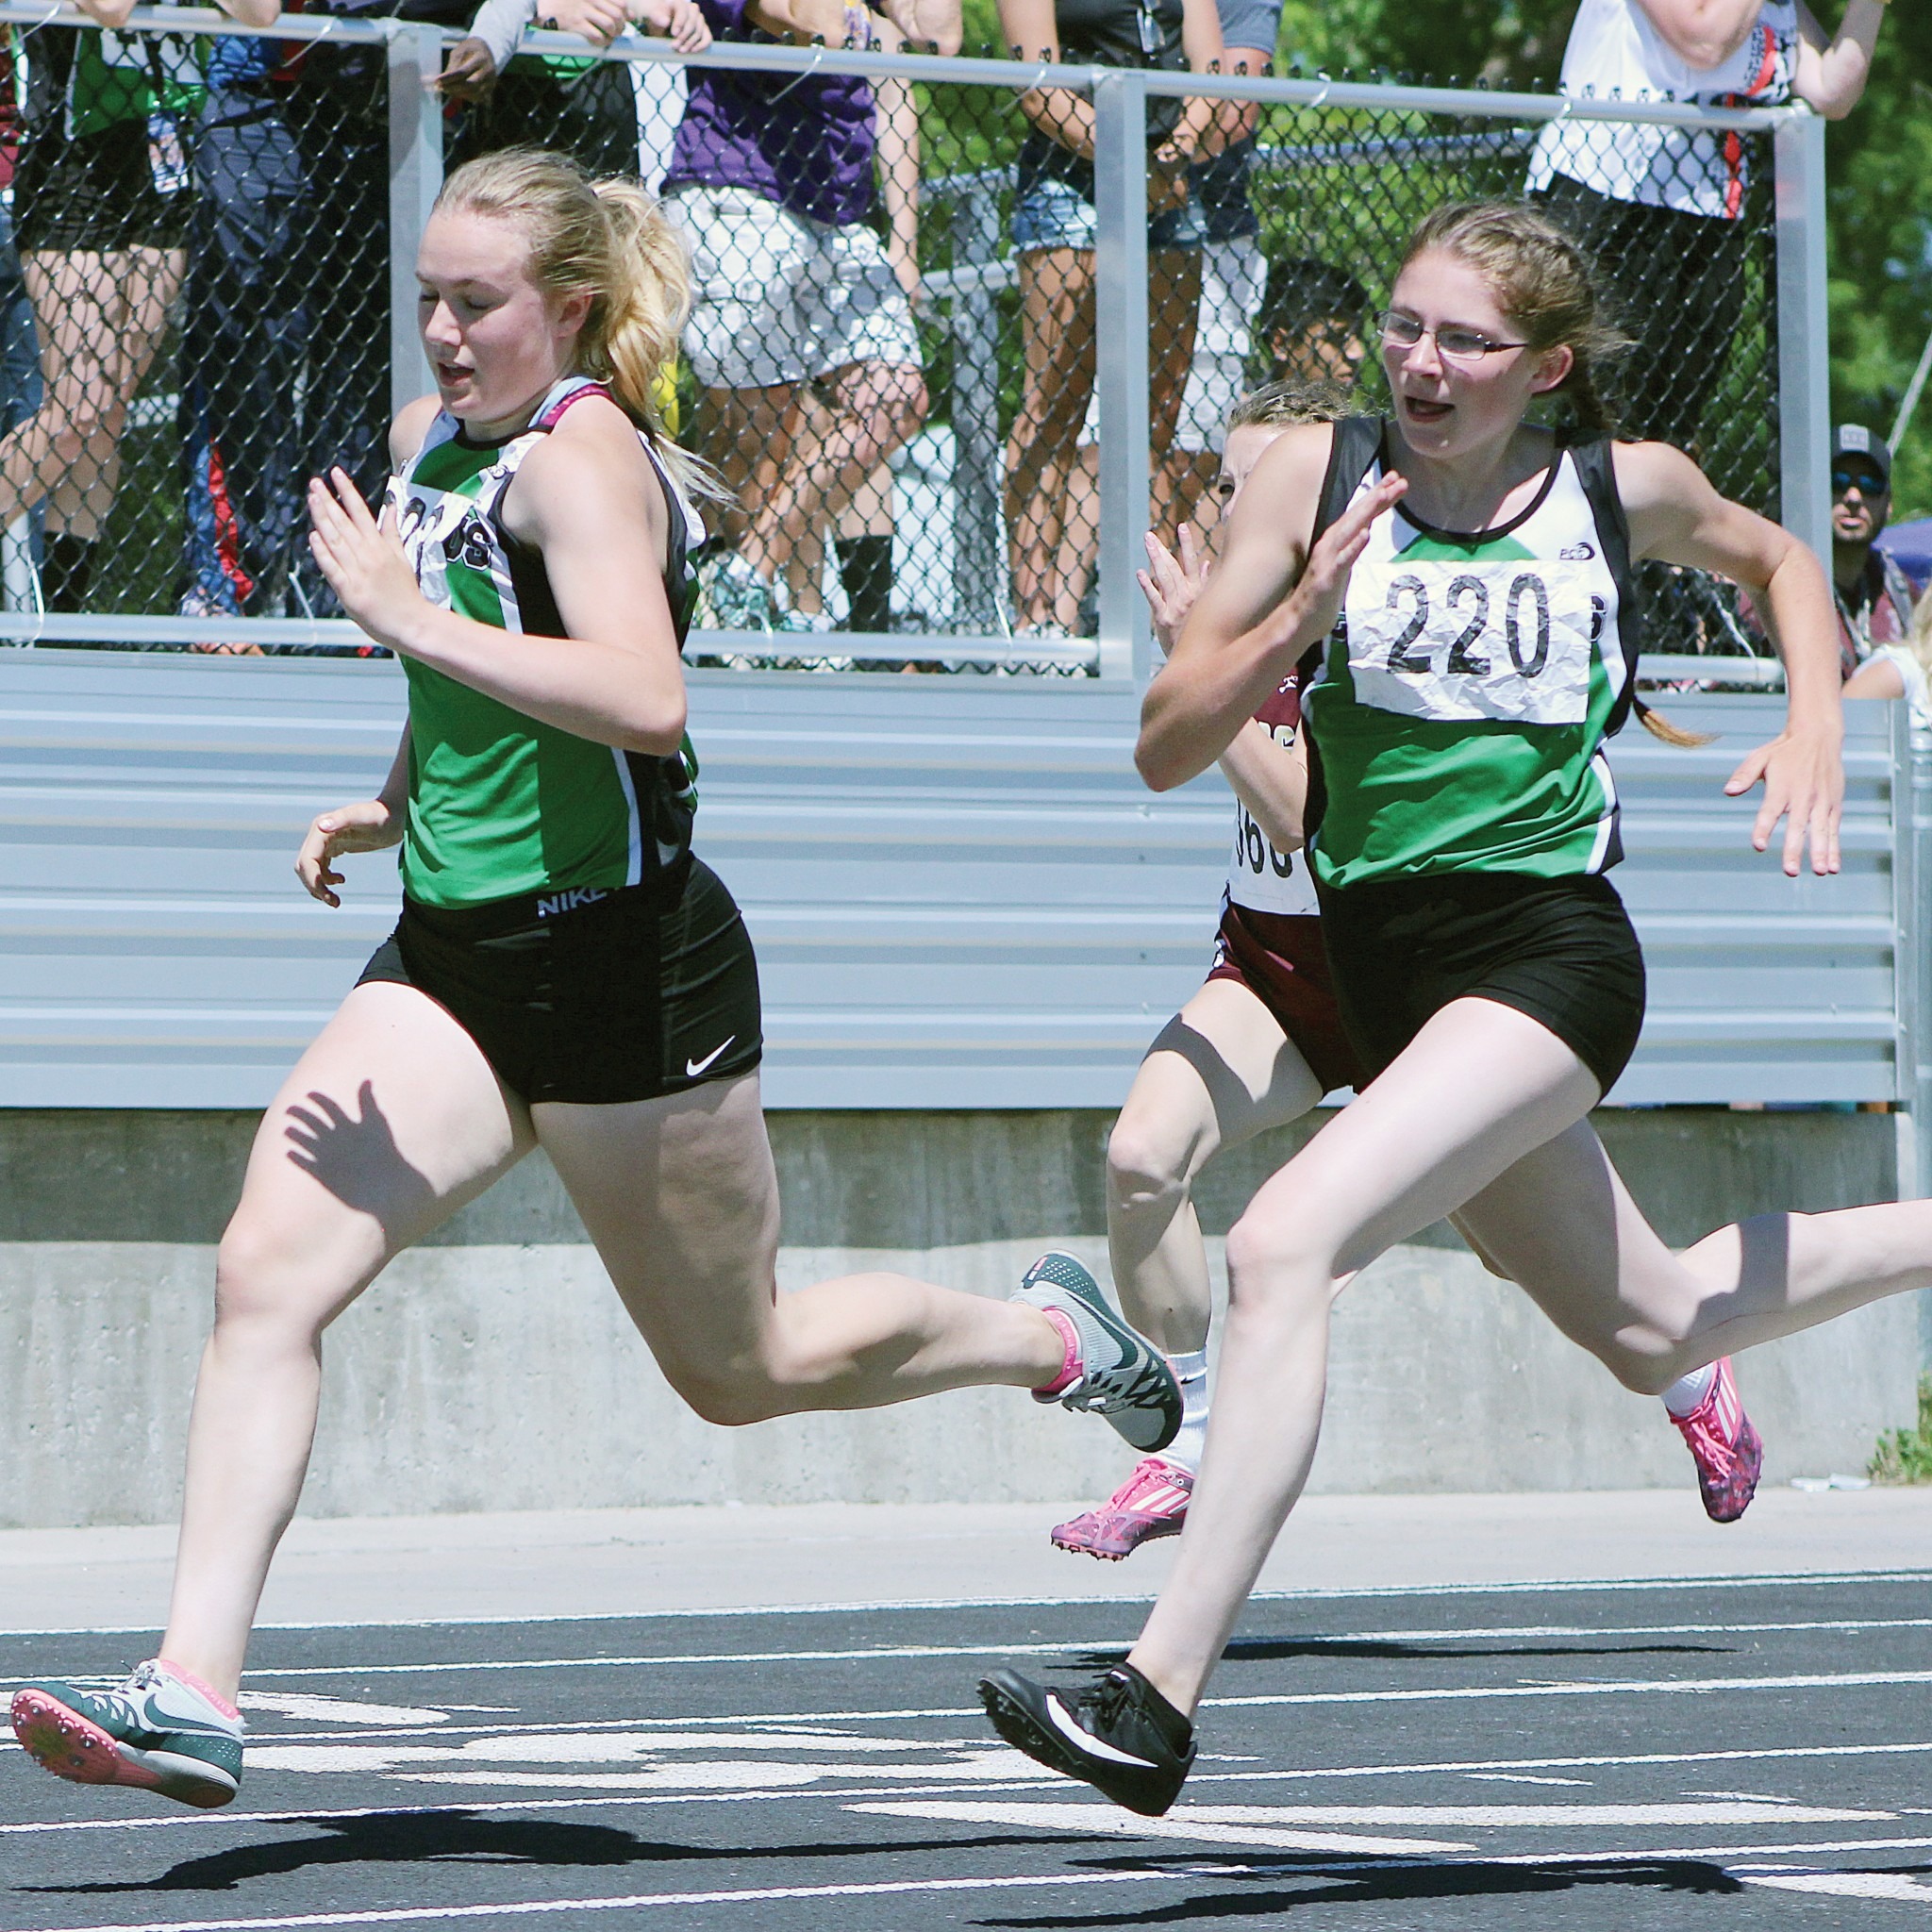 Columbus Cougars RaiLeigh Strommen (left) and Amber LeBrun (right) -- 200m